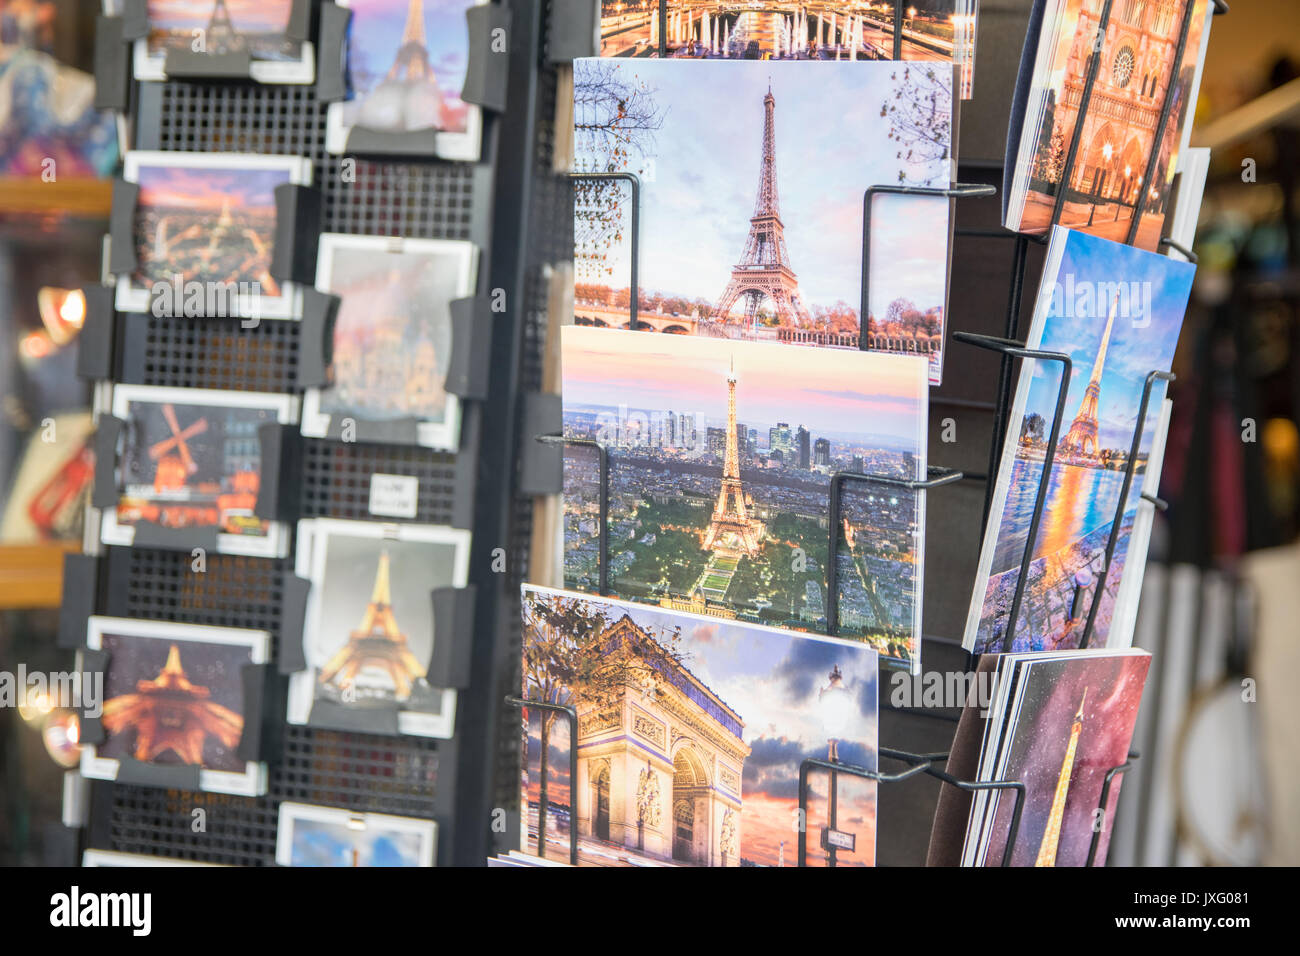 PARIS, FRANCE - JUNE 07, 2017: : Various postcards from Paris displayed at souvenir shop Stock Photo